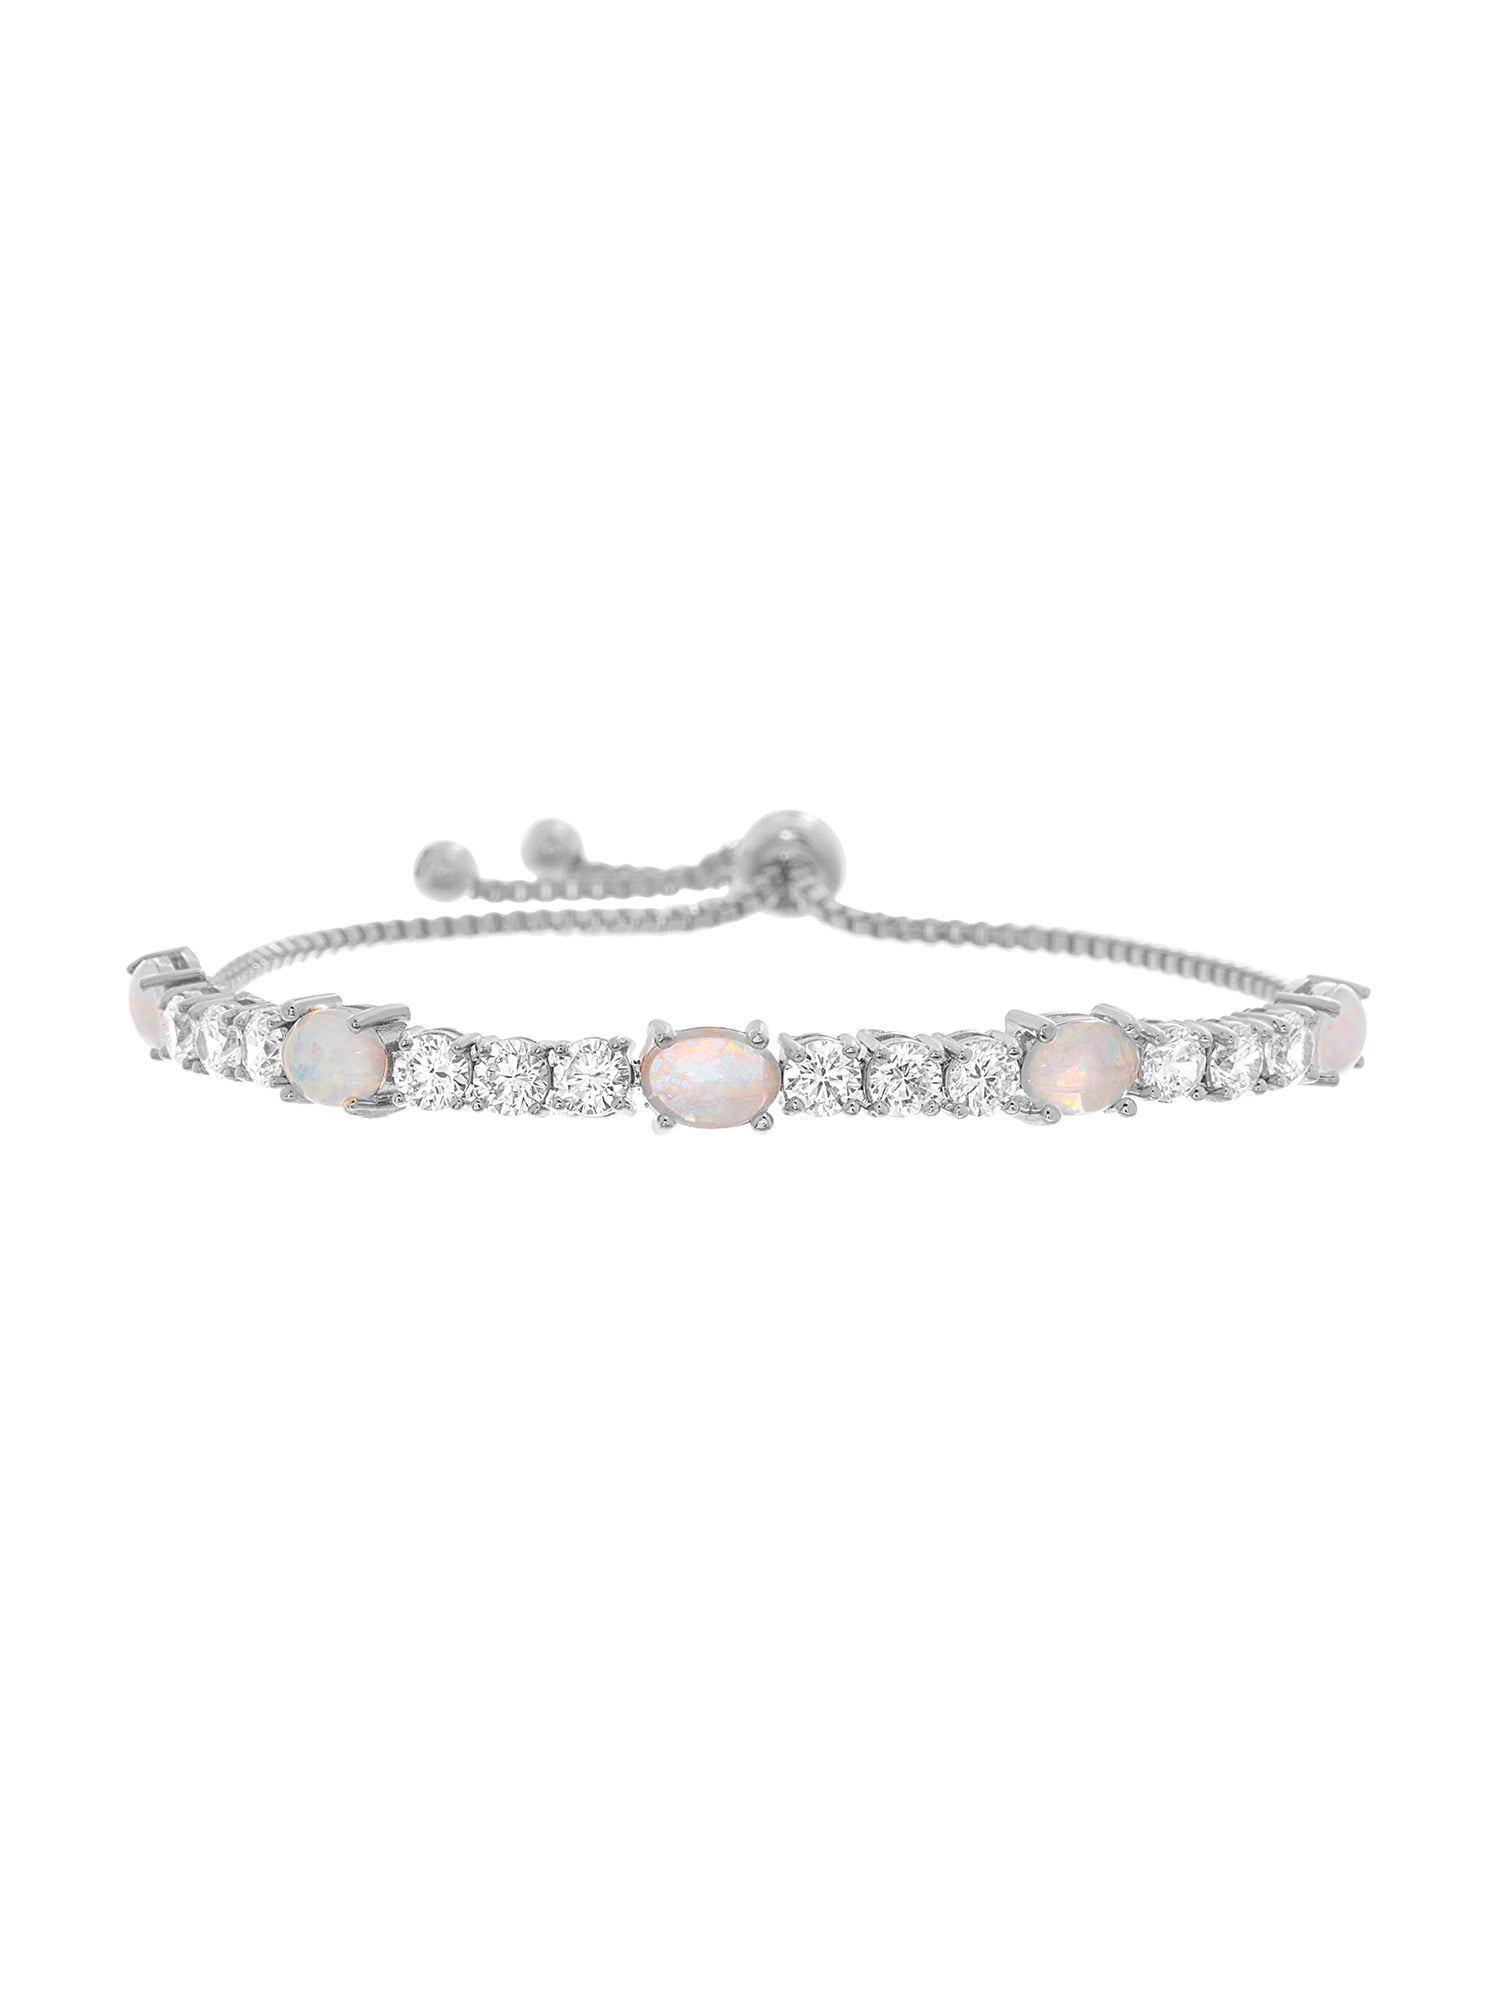 Lesa Michele Lab-Created Opal and Cubic Zirconia Adjustable Slider Bracelet by NES Group